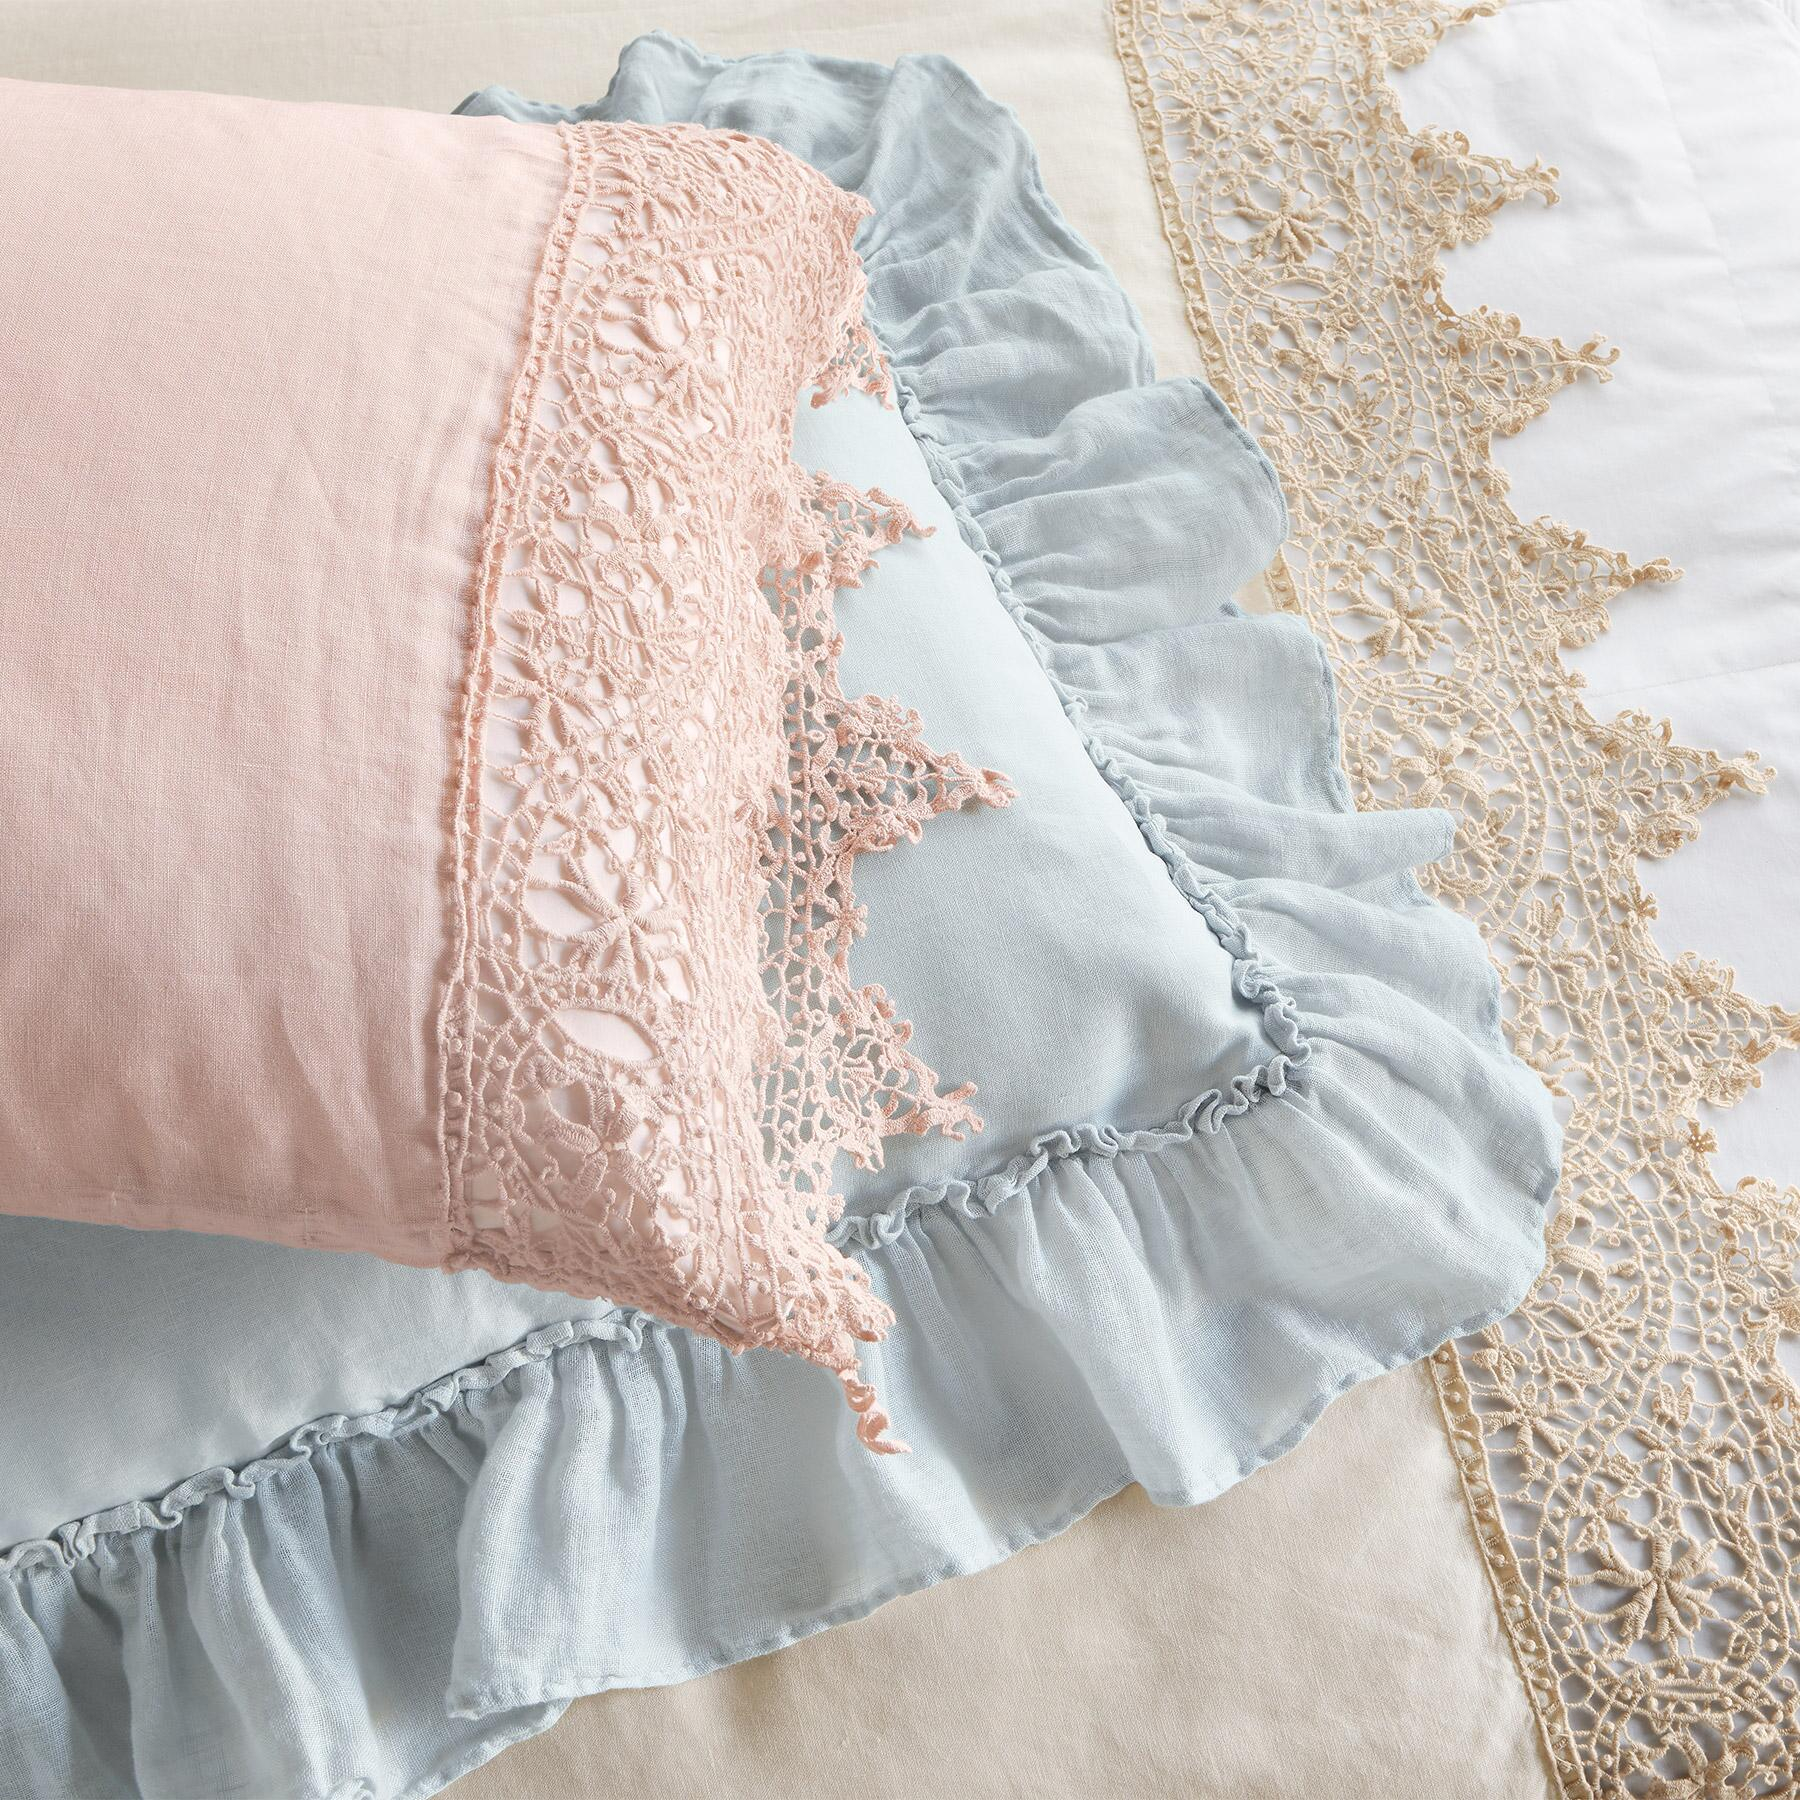 Gossamer Linen Lace Pillowcase: View 2